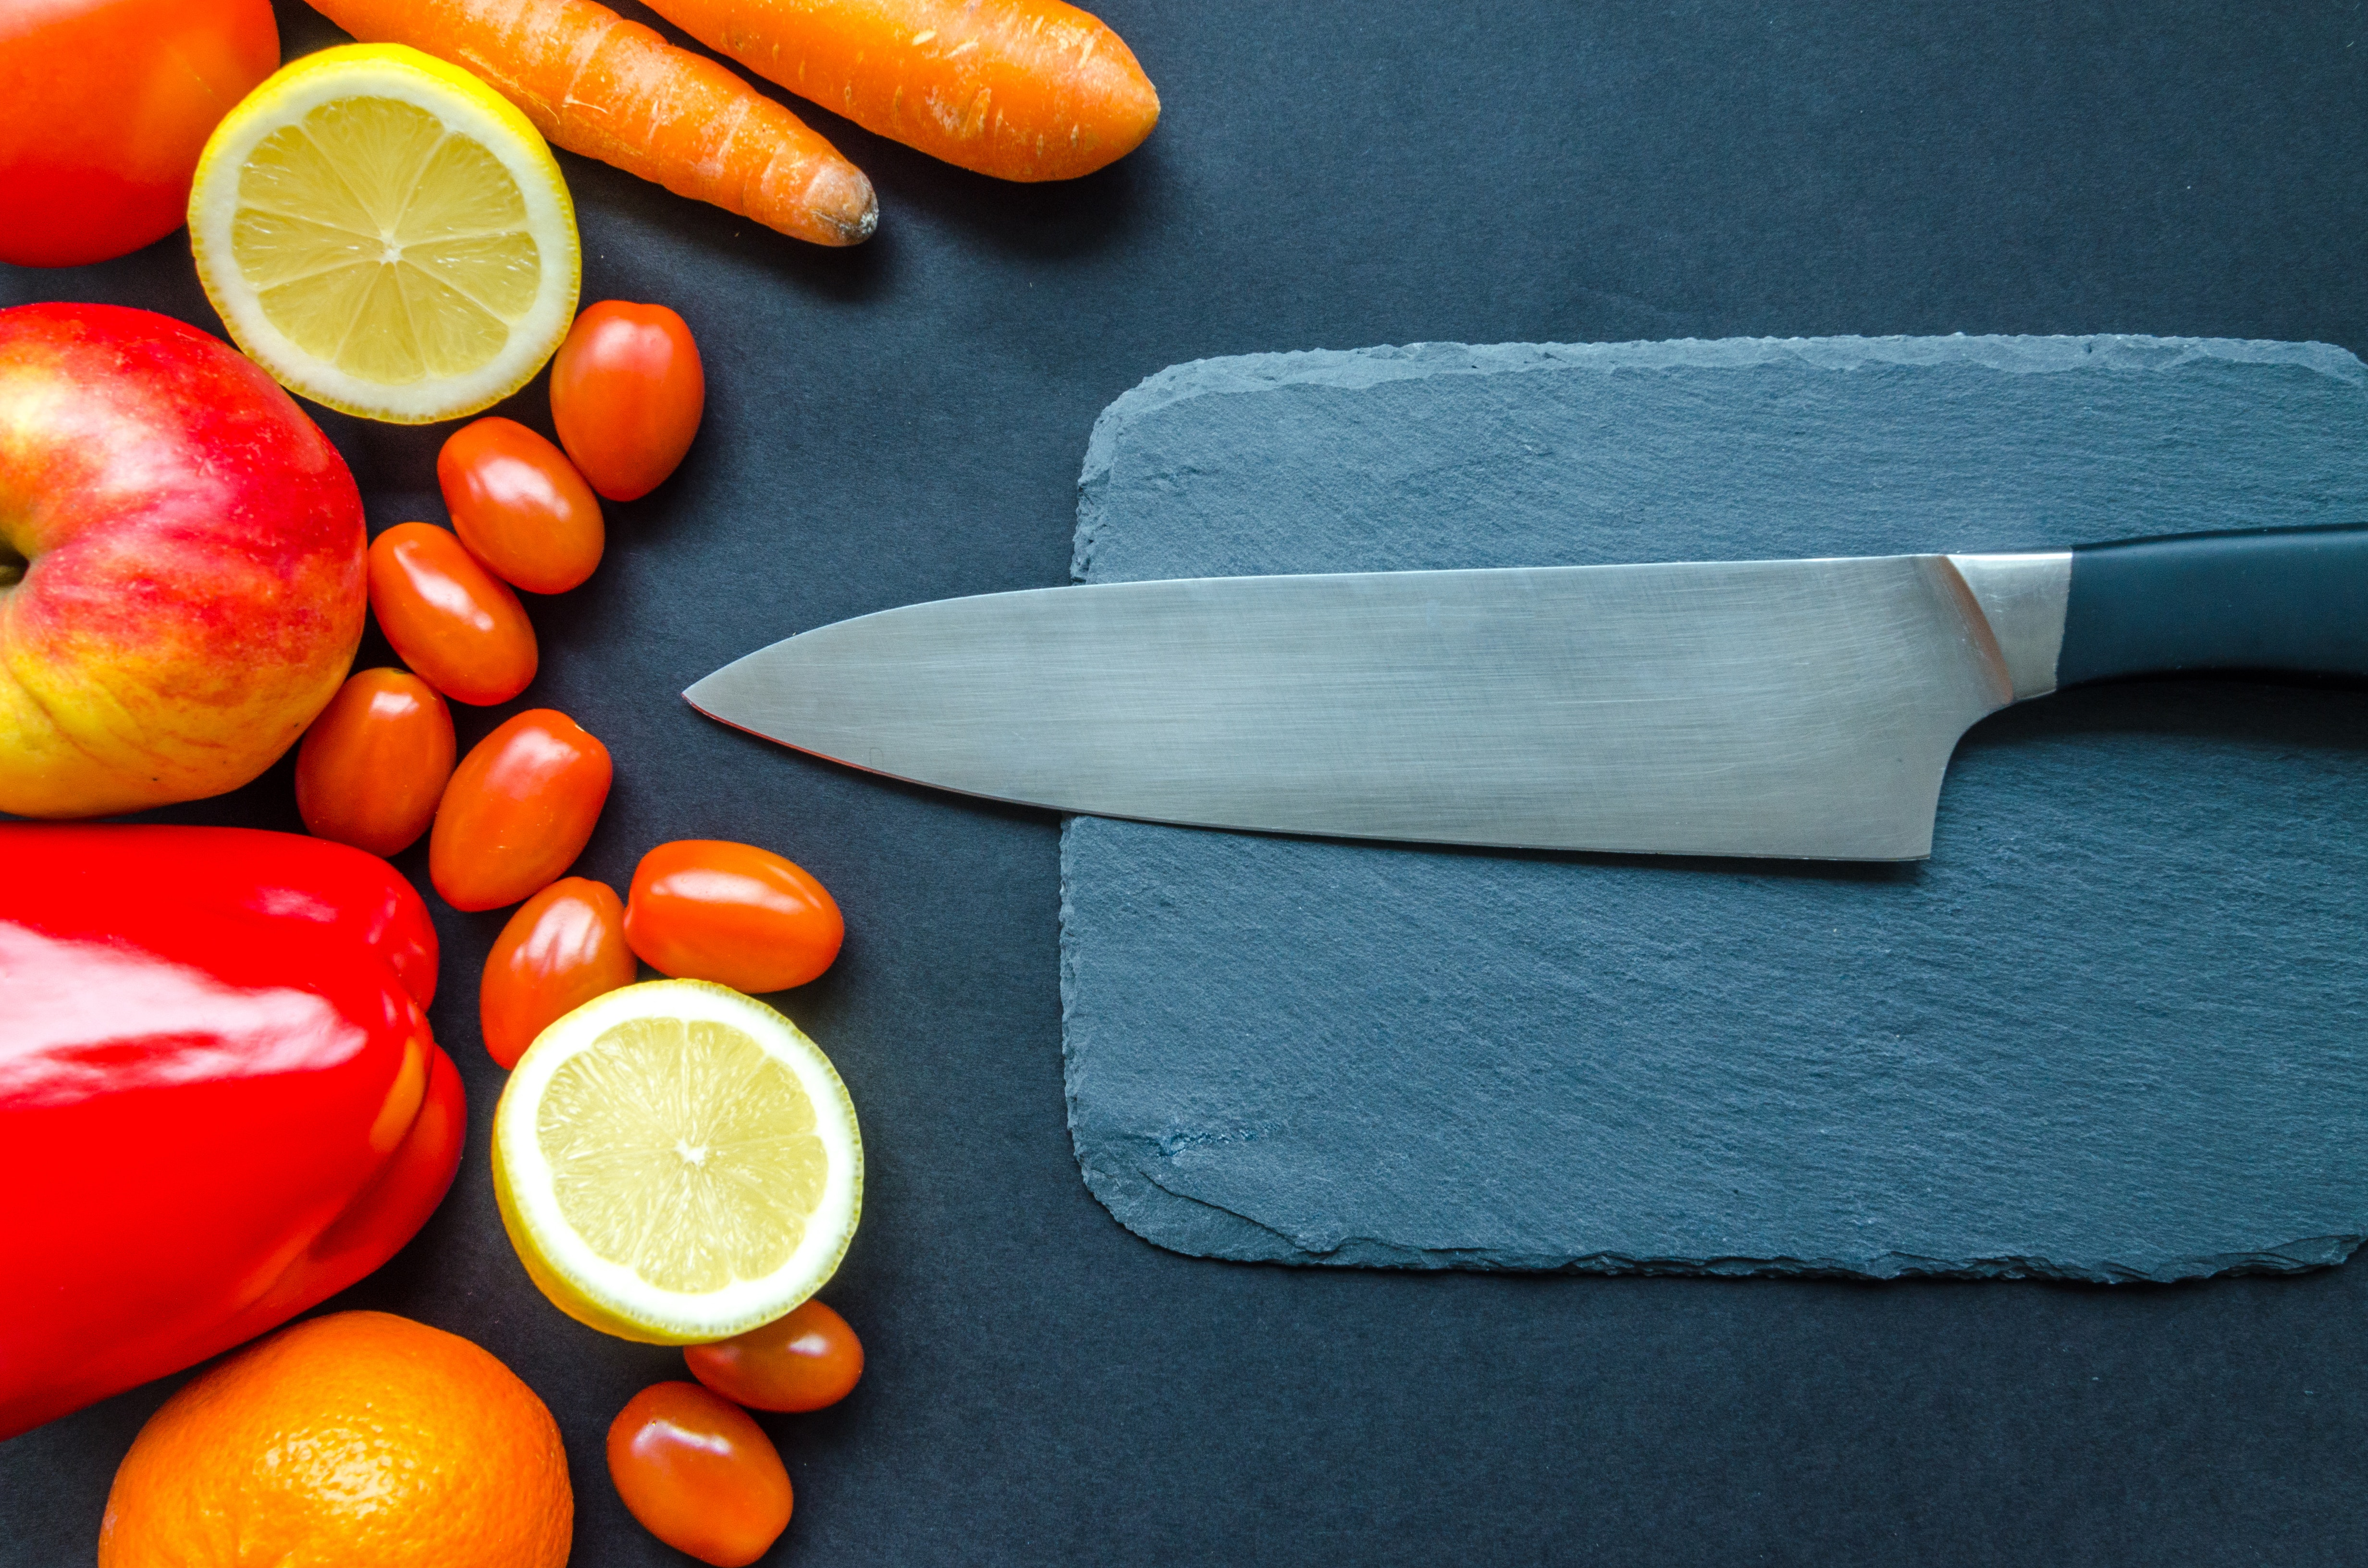 Black Kitchen Knife With Fruits and Vegetable on Table, Orange, Pepper, Lime, Lemon, HQ Photo